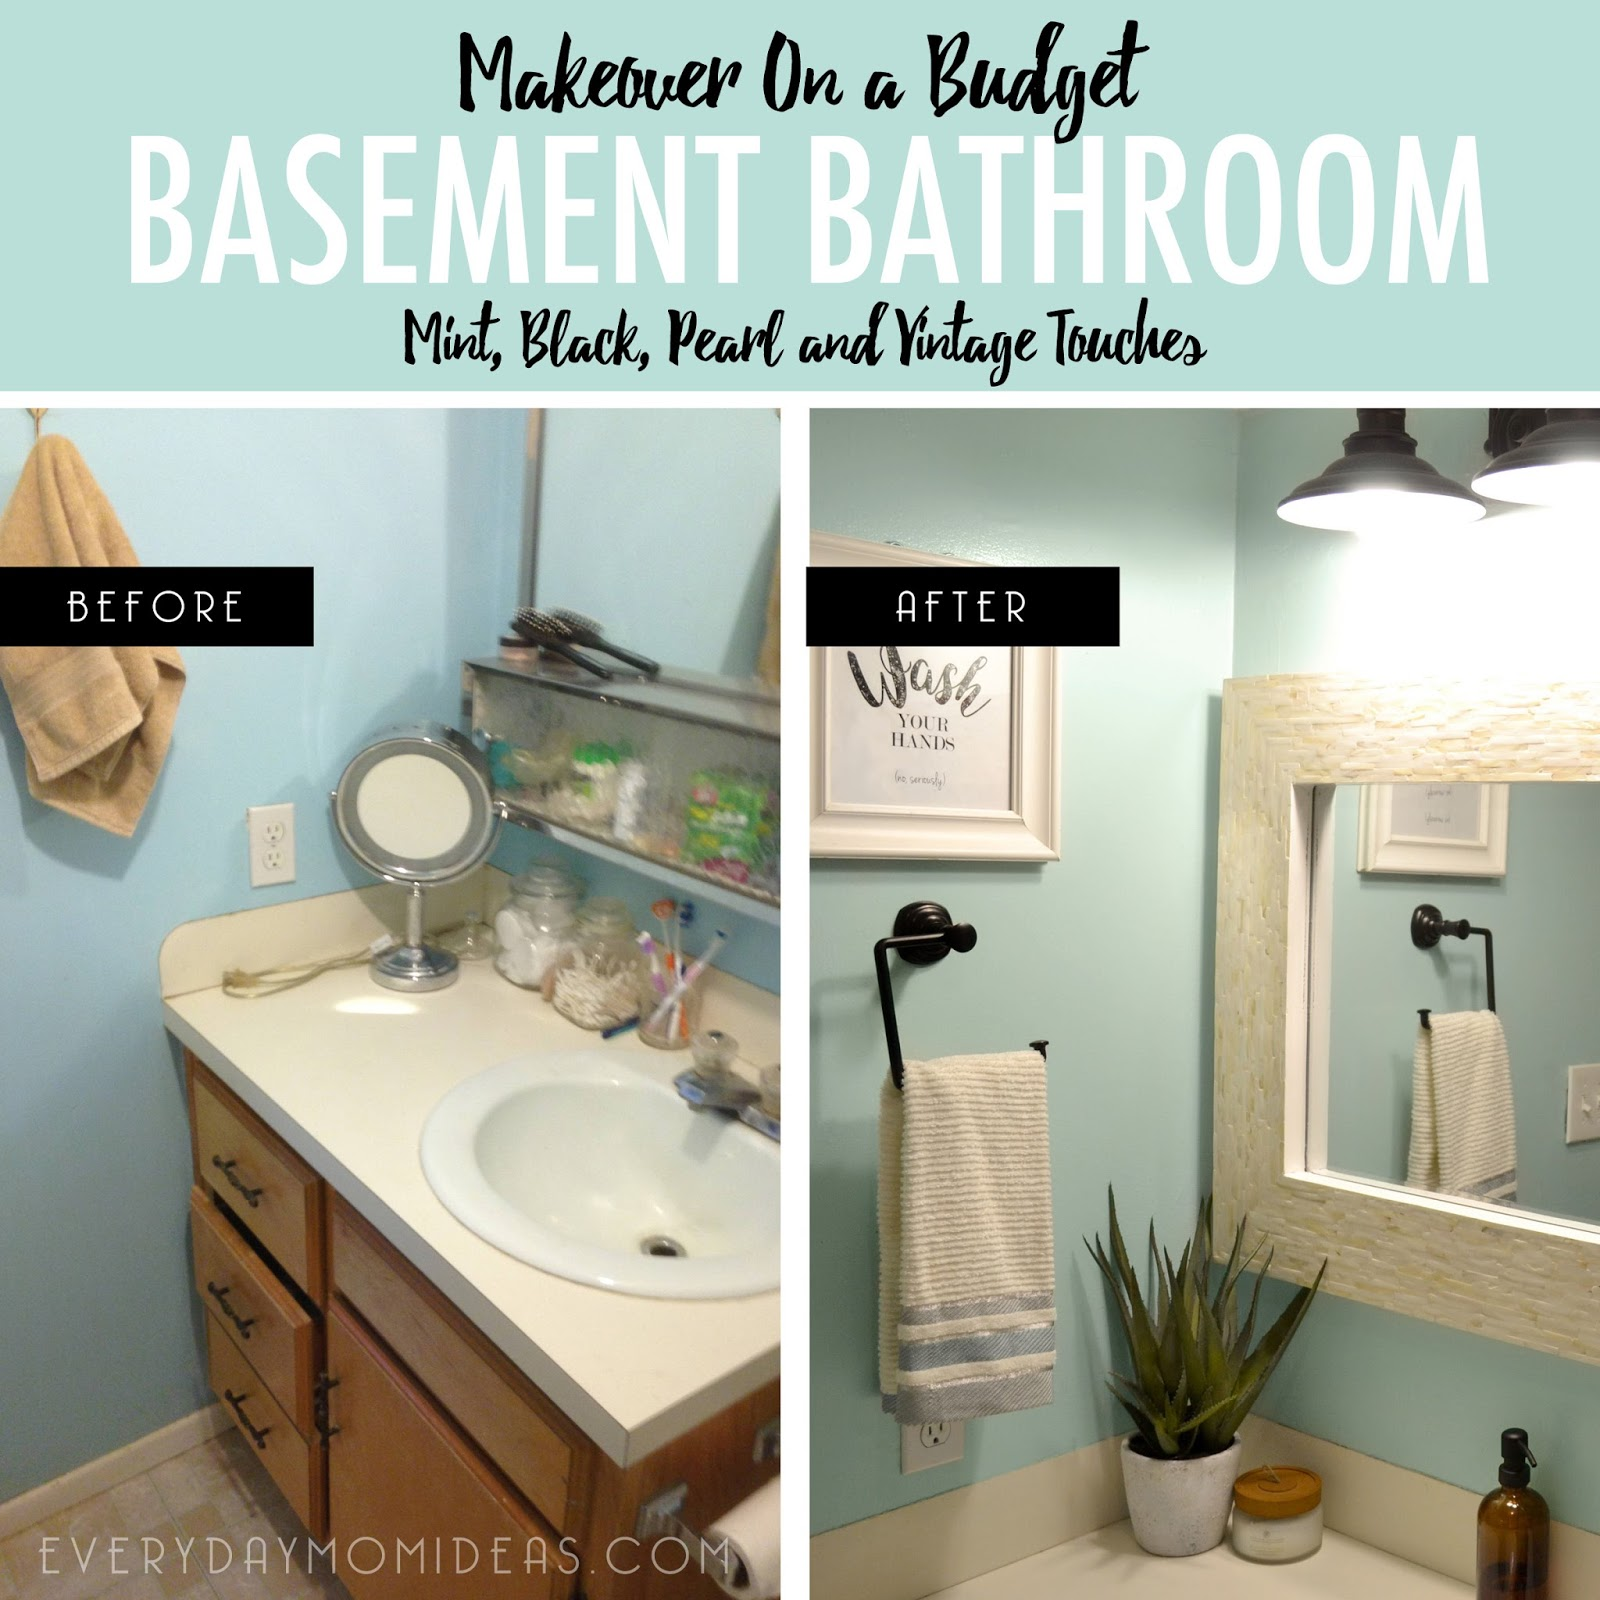 Unique  accents throughout including the light fixture towel holder wall mounted storage rack frosted glass shelves and even the amber glass soap dispenser